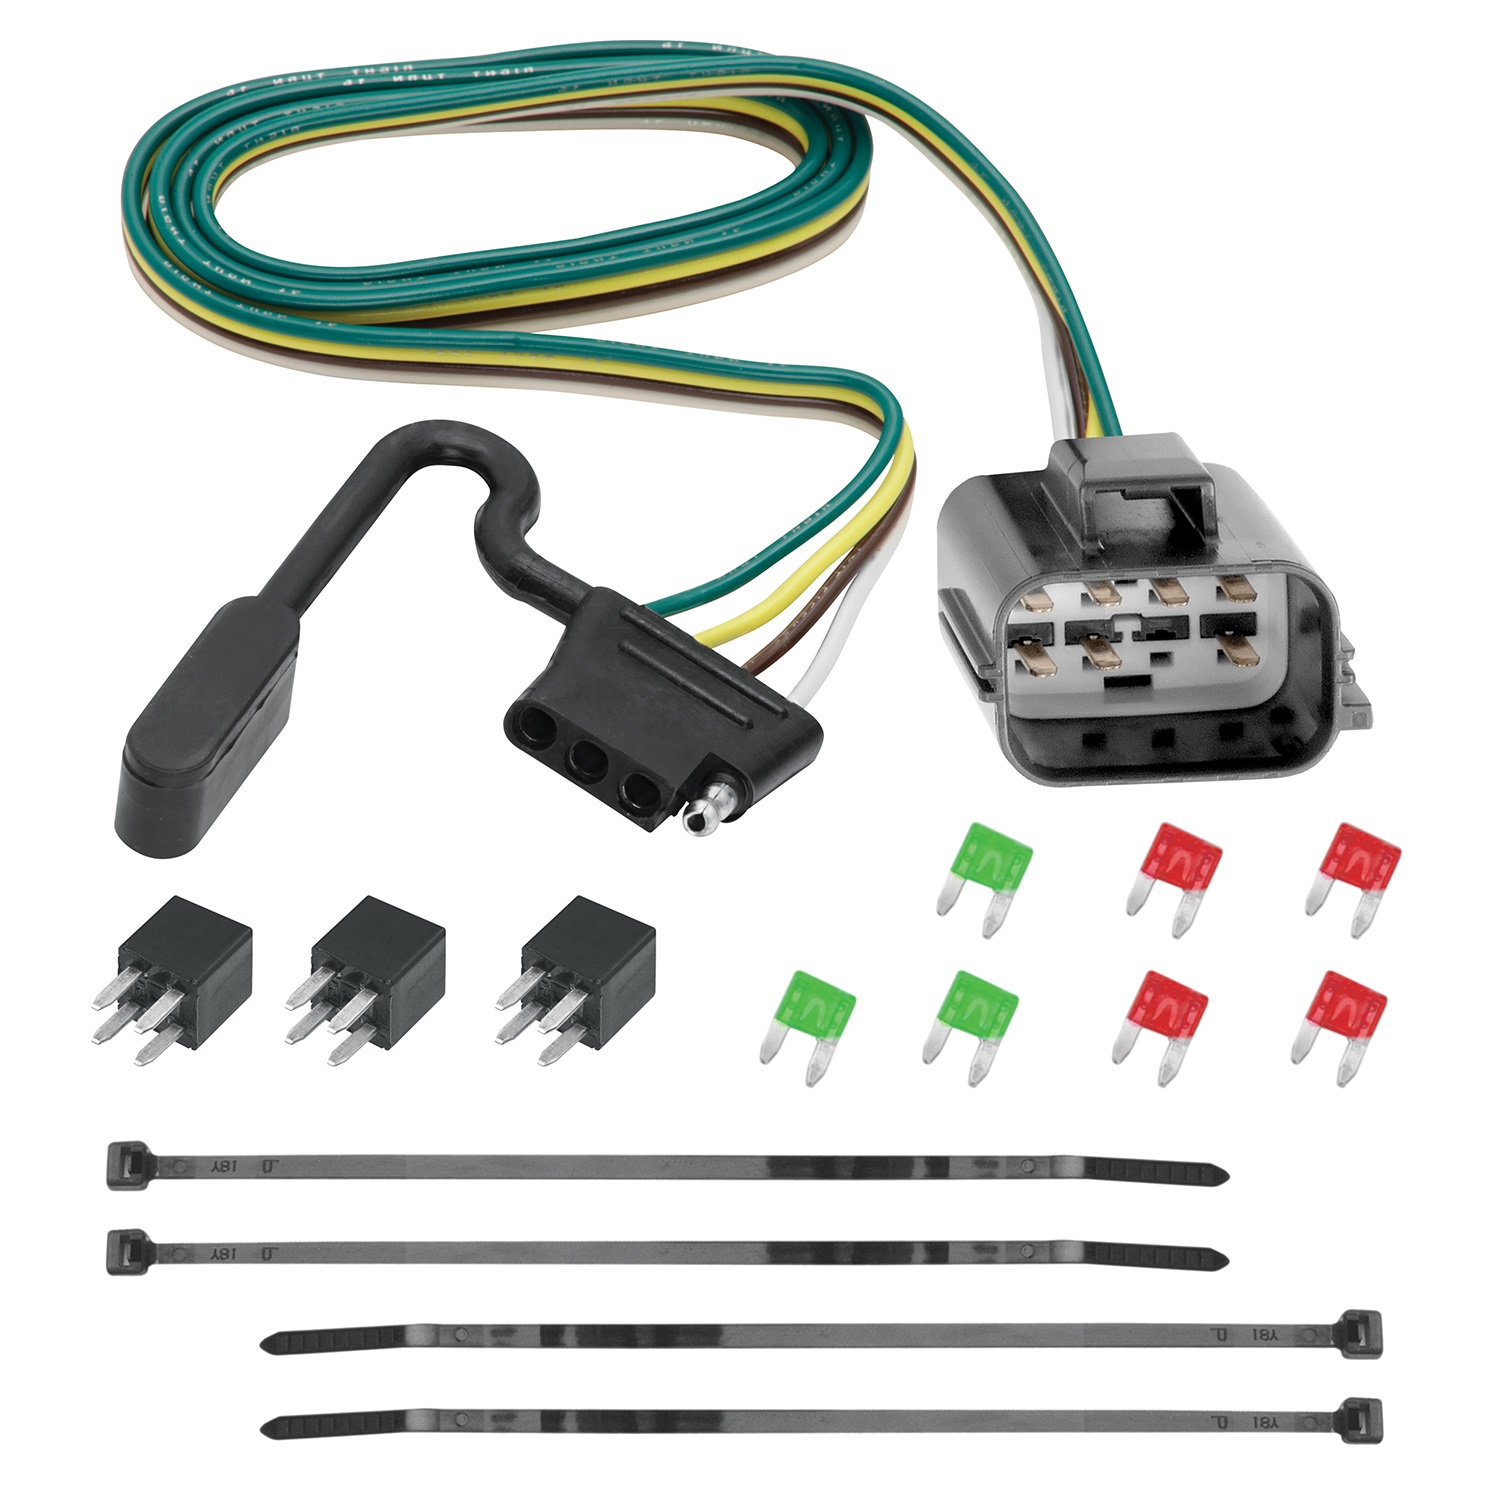 13-C Acadia/Enclave/Traverse Replacement Oem Tow Package 4Way Flat with Circuit Protected Hd Modulite Replacement Auto Part, Easy to Install